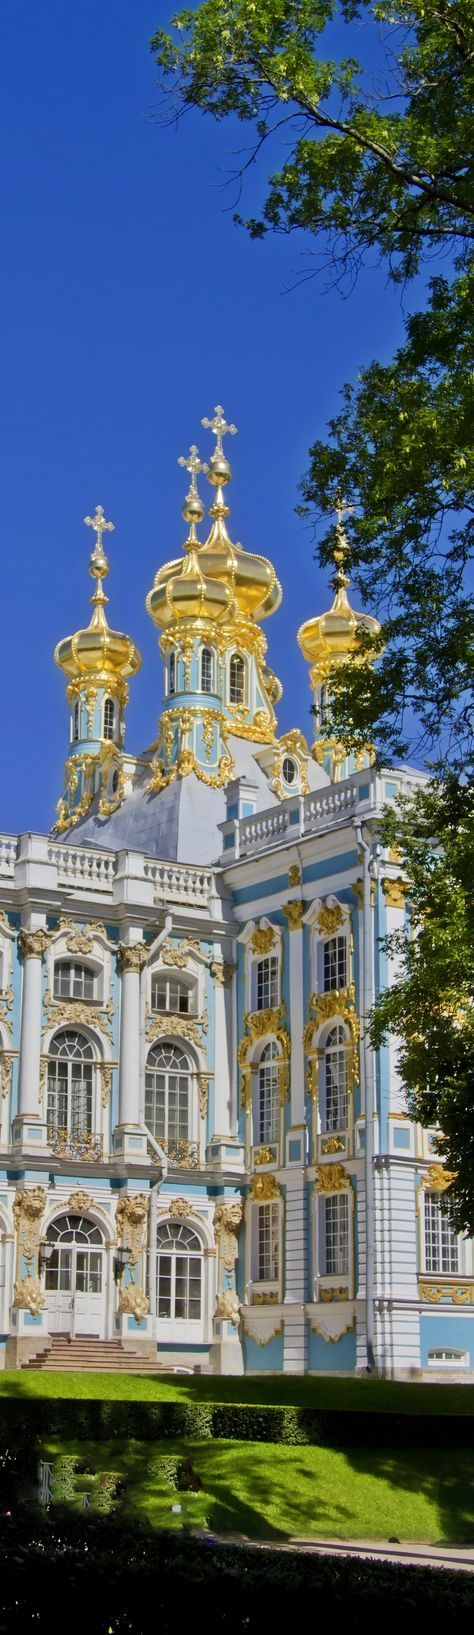 Catherine's Palace in Pushkin, Russia